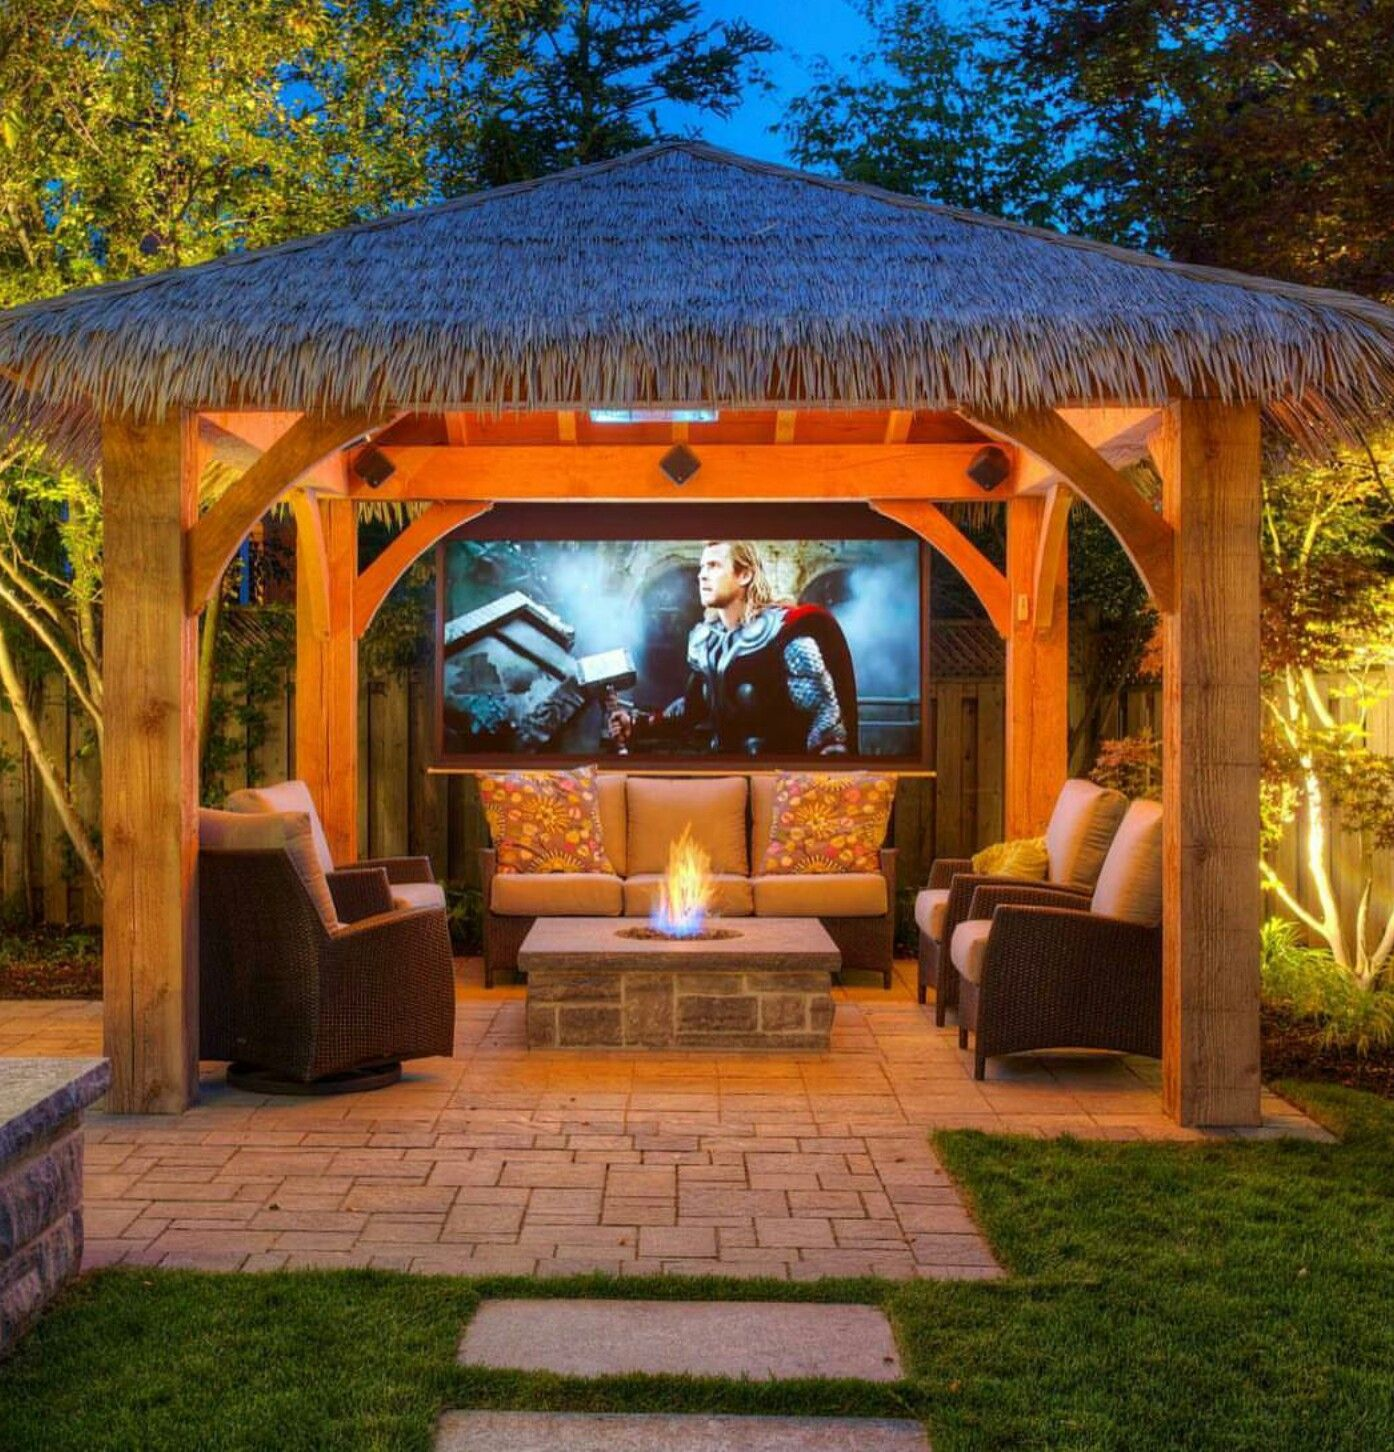 Teepee Pergola With A Projector Screen..... Maybe For